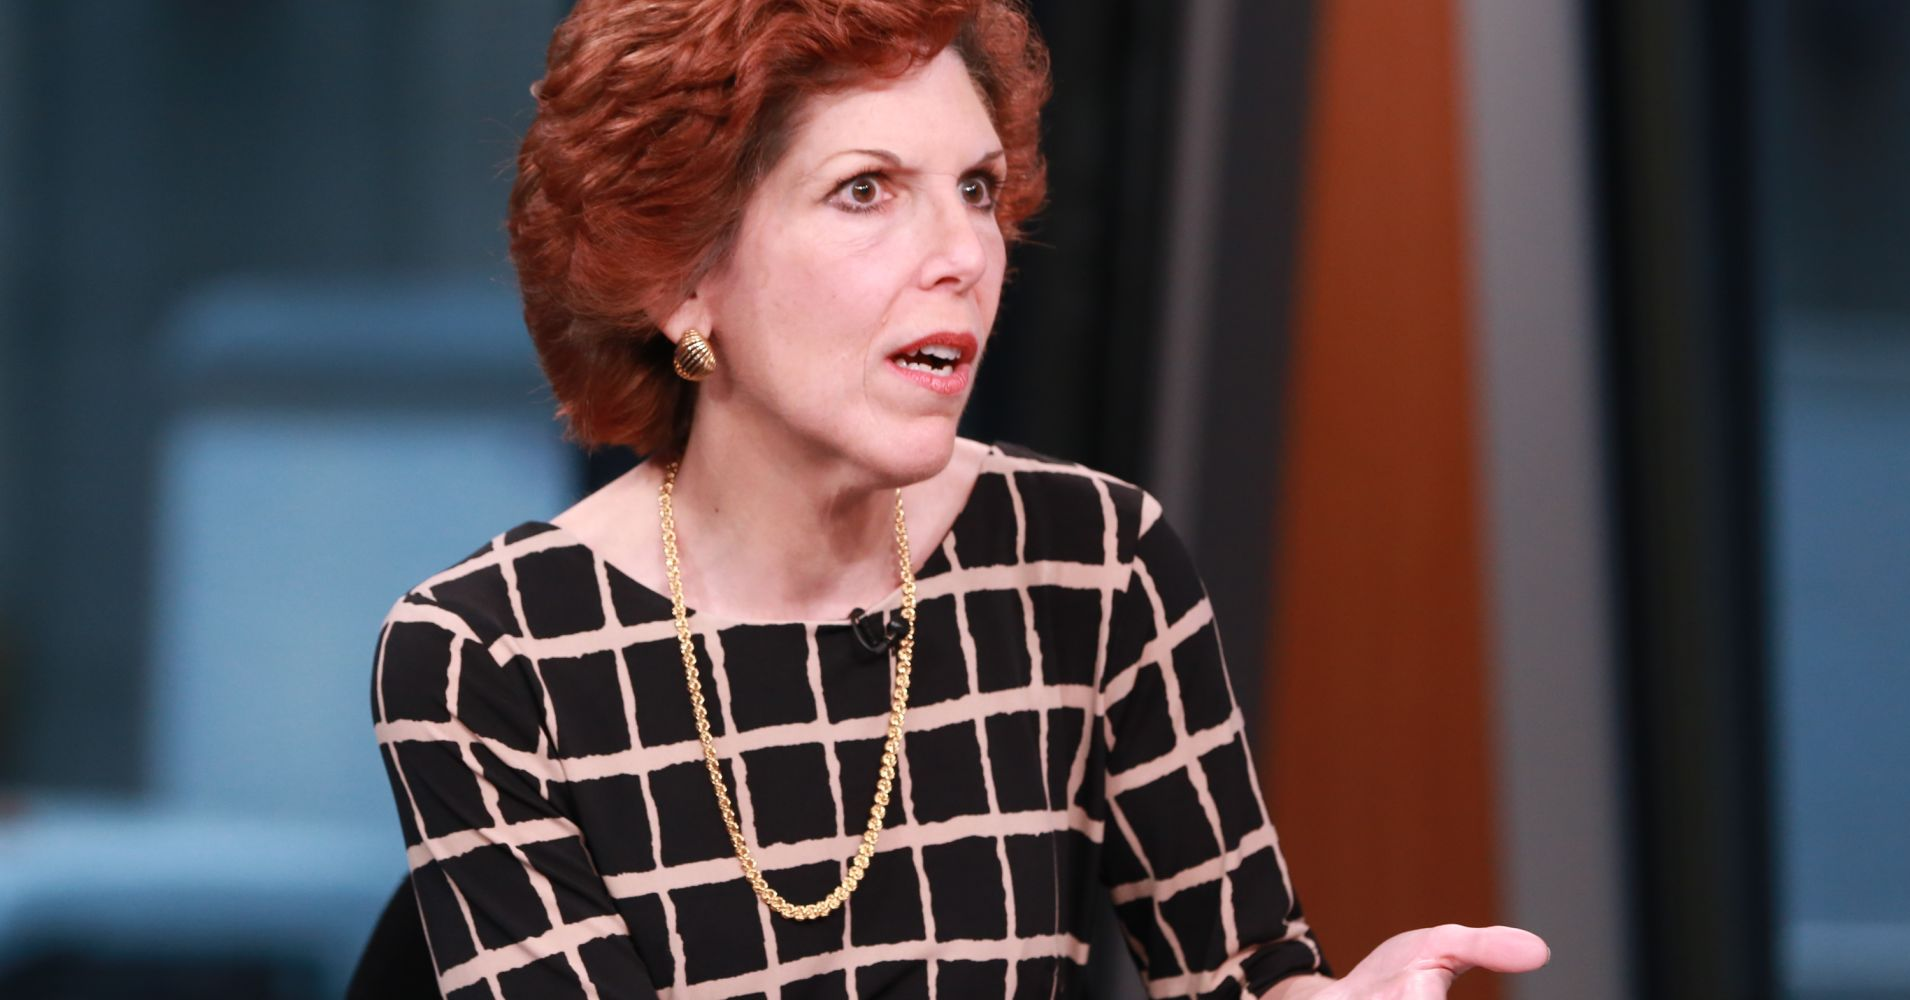 Cleveland Fed President Loretta Mester says if inflation doesn't rise, Fed could stop hikes